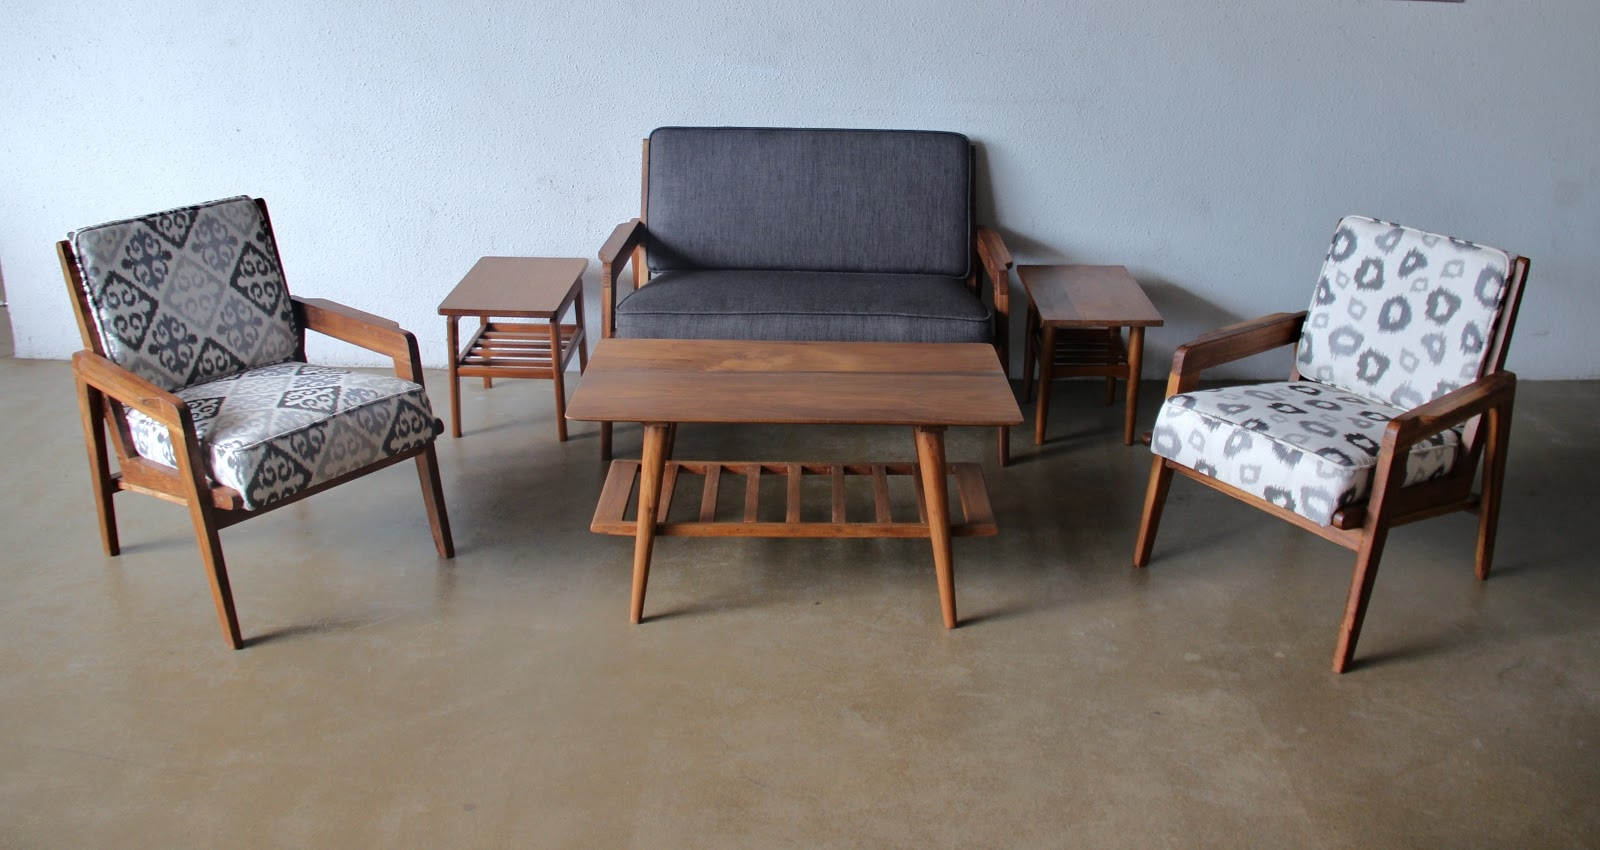 Decoration Retro Sofas And Chairs With Retro Sofa Couch Design Intended For Retro Sofas And Chairs (Image 5 of 15)